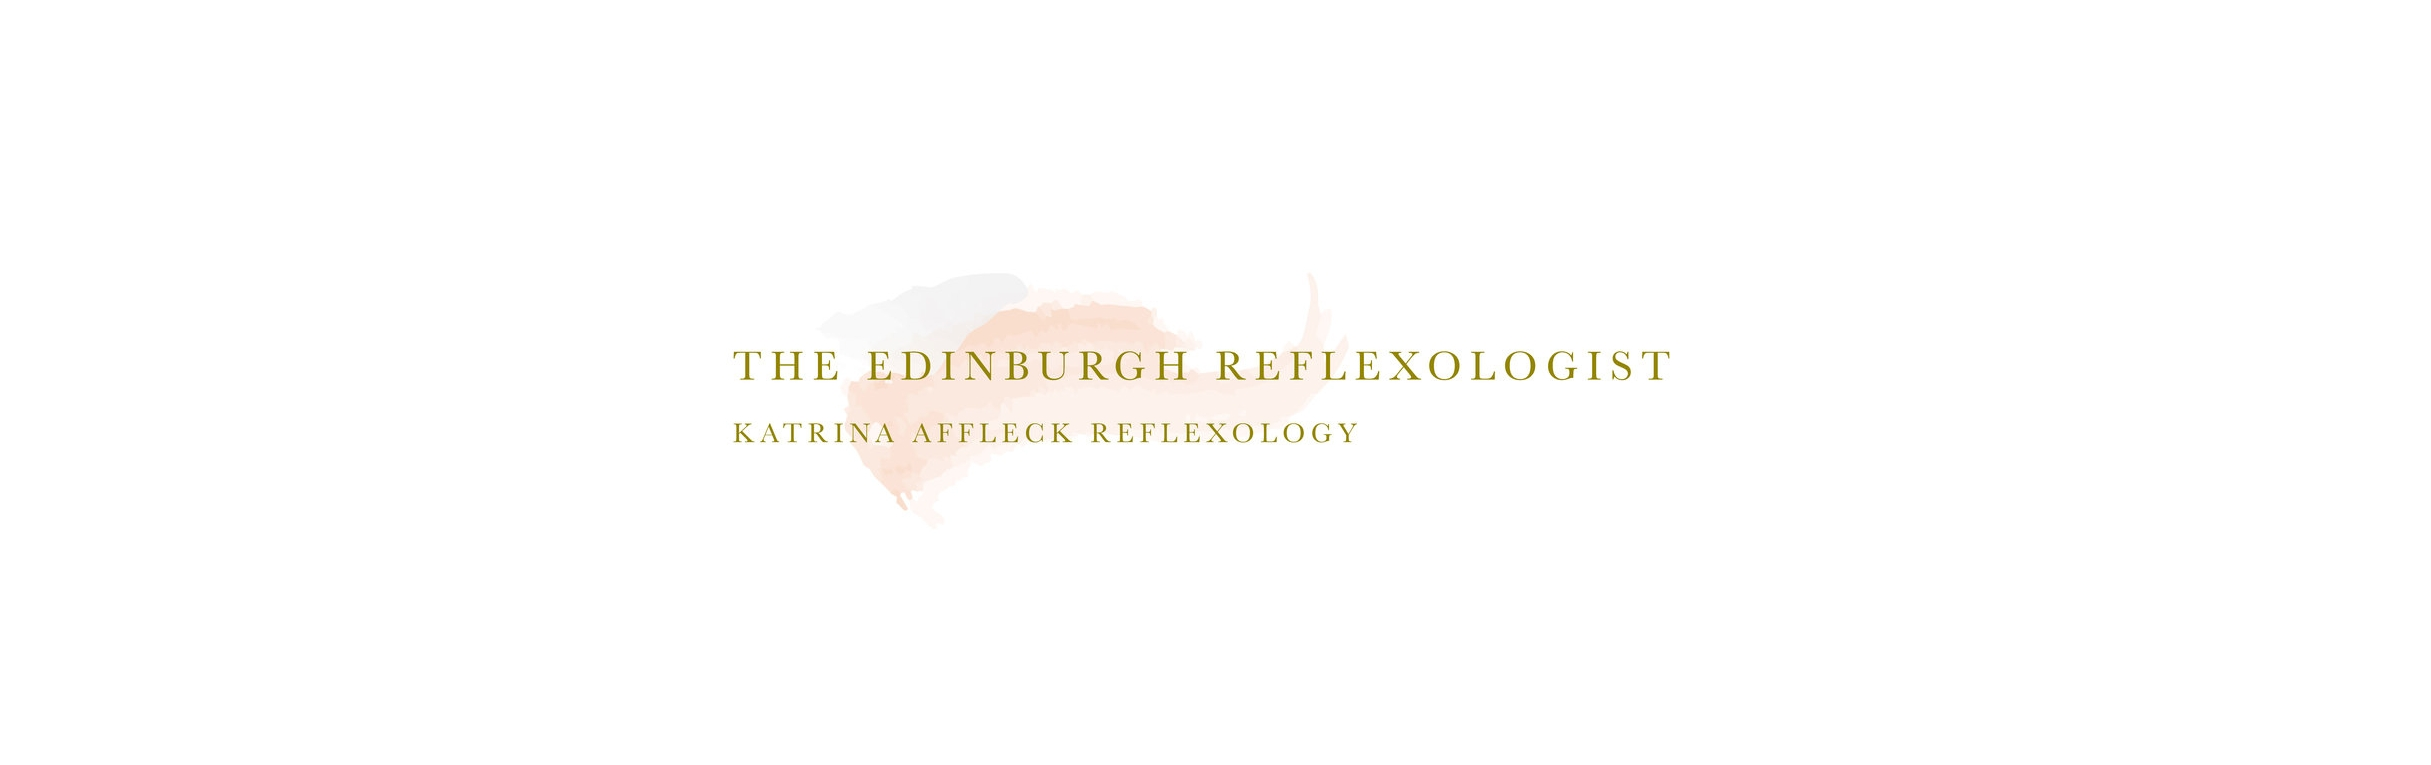 The Edinburgh Reflexologist Edinburgh Reflexology